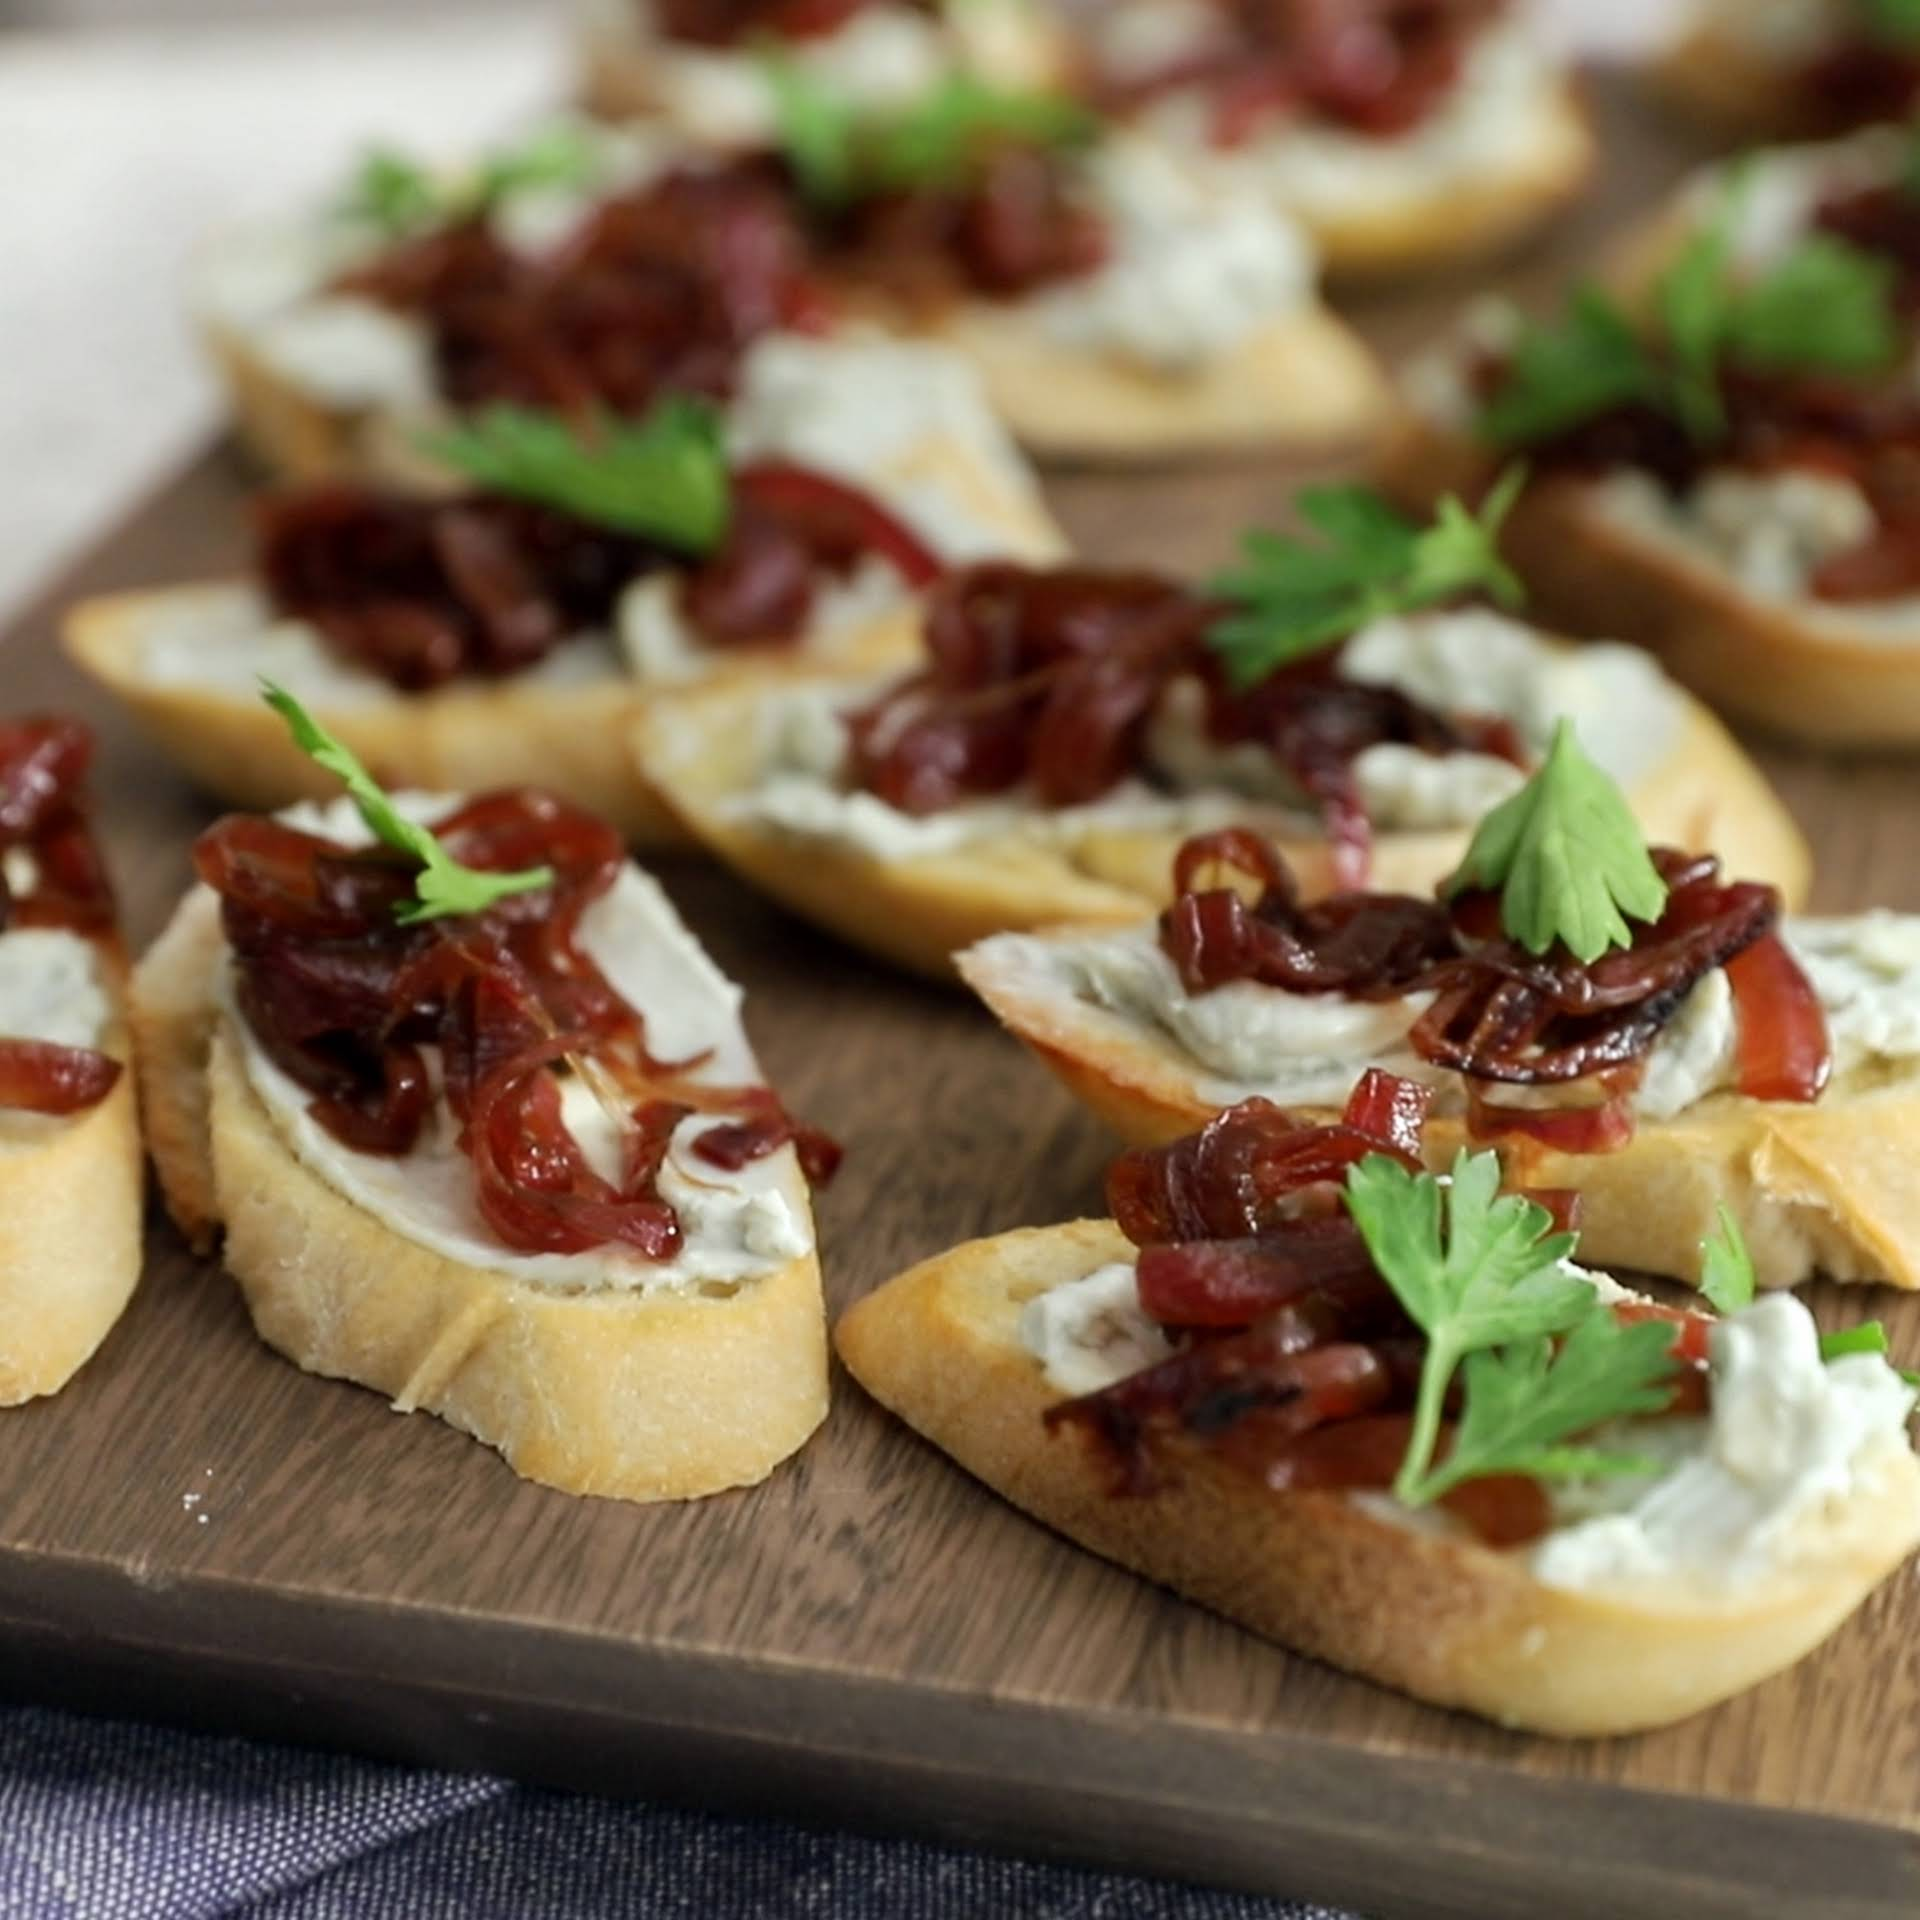 Creamy Blue Cheese and Red Onion Crostini